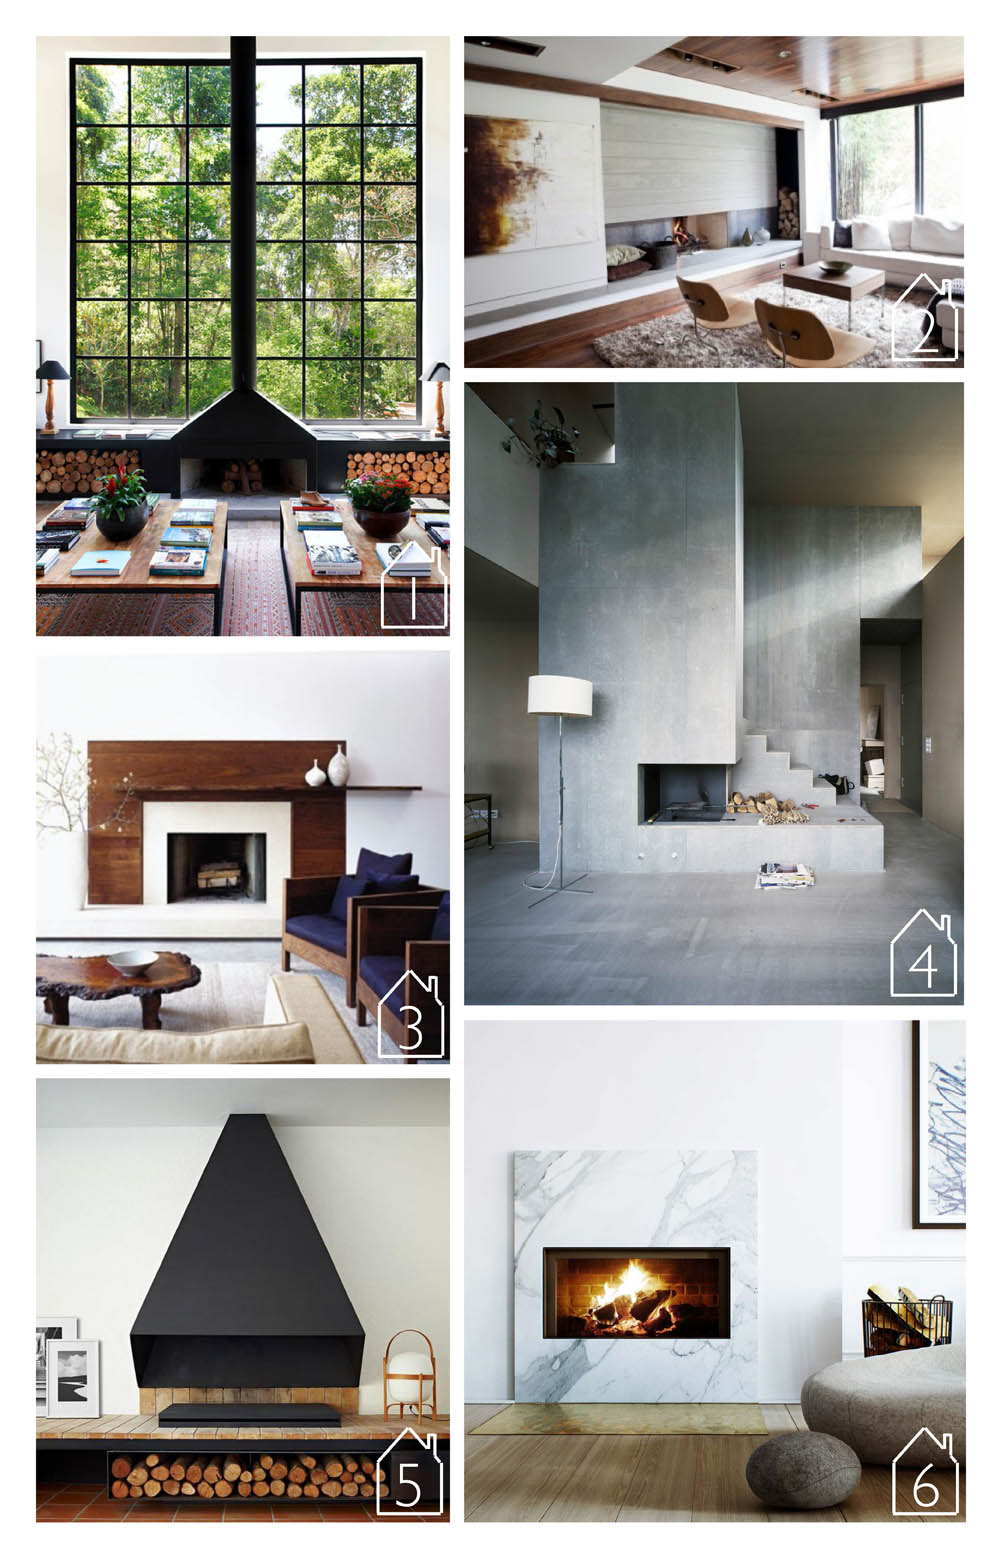 1. Brazilian villa fireplace designed by  Ourico Architecture  via  Apartment Therapy   2. Family room fireplace by  Capoferro  via  Houzz   3. West chelsea loft design by  Amy Lau Design   4. House Muller Gritsch design by  AFGH  via  ArchDaily   5. Spanish apartment by  Francesc Rife  via  homedit   6. Karlavagen 76 (Oscar Properties) via  Husligheter